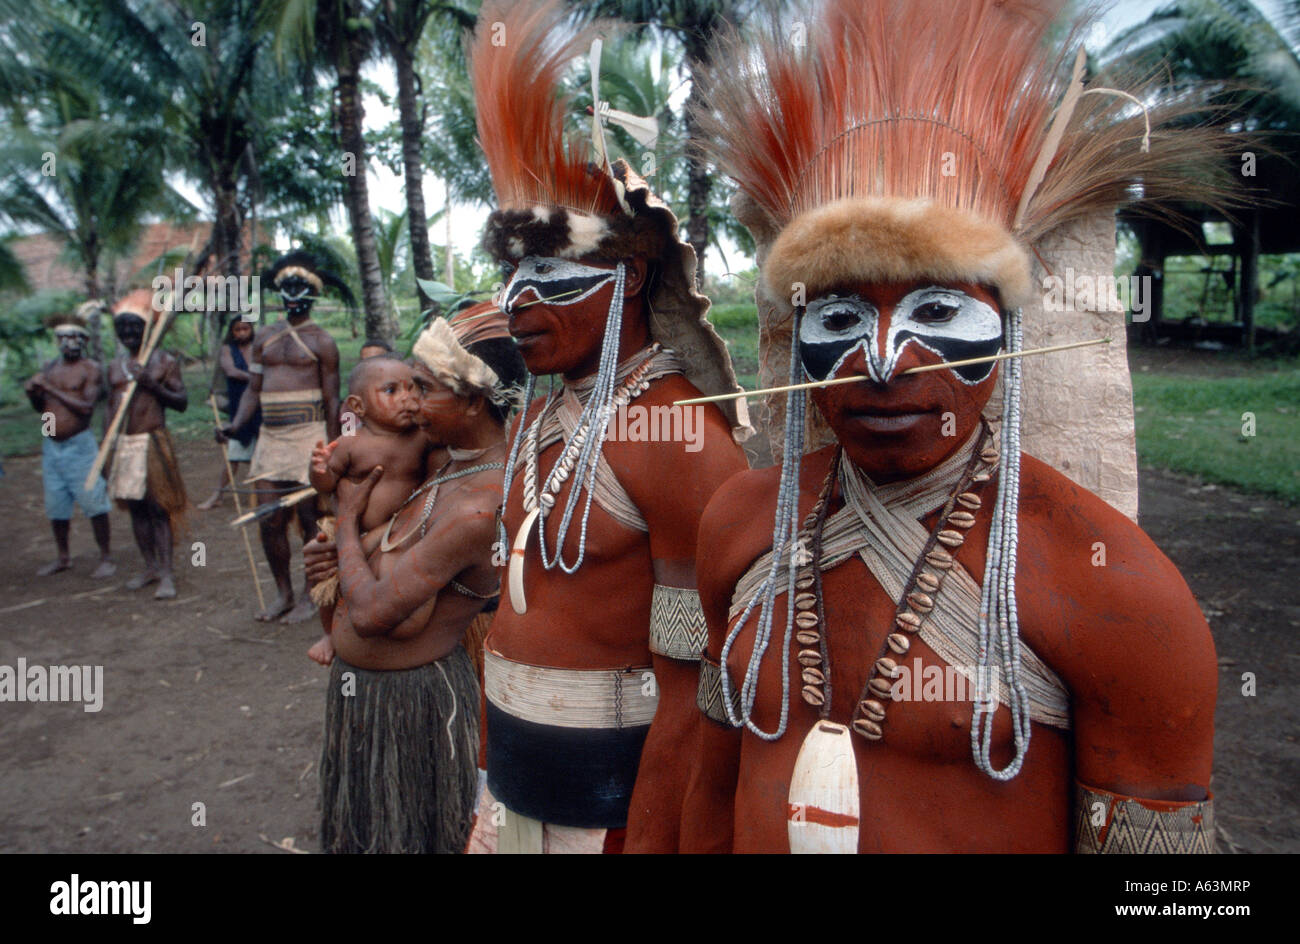 Papua New Guinea - Chief of the Gabusi tribe with spear and traditional war paint - Stock Image